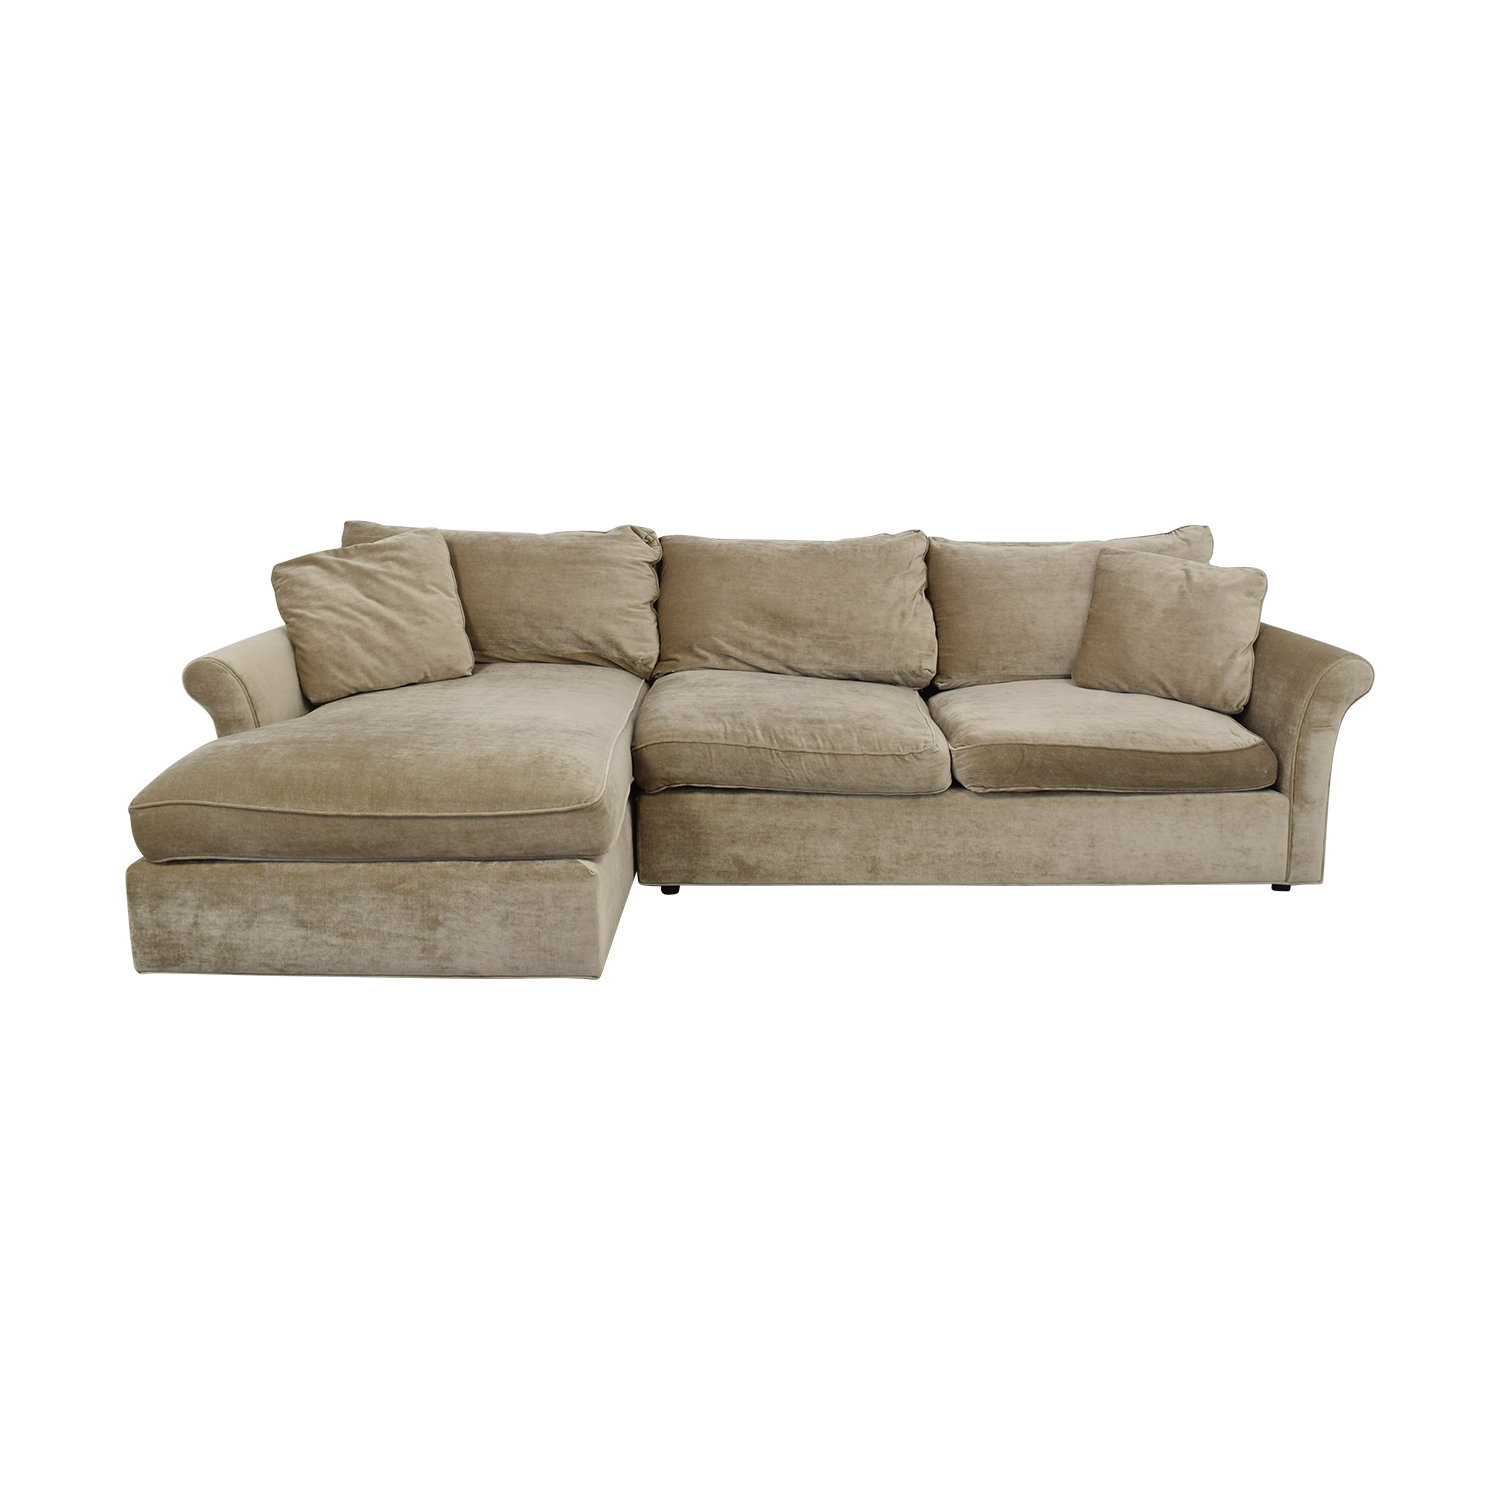 ABC Carpet & Home ABC Carpet & Home Winged Arm Sectional Sofa for sale